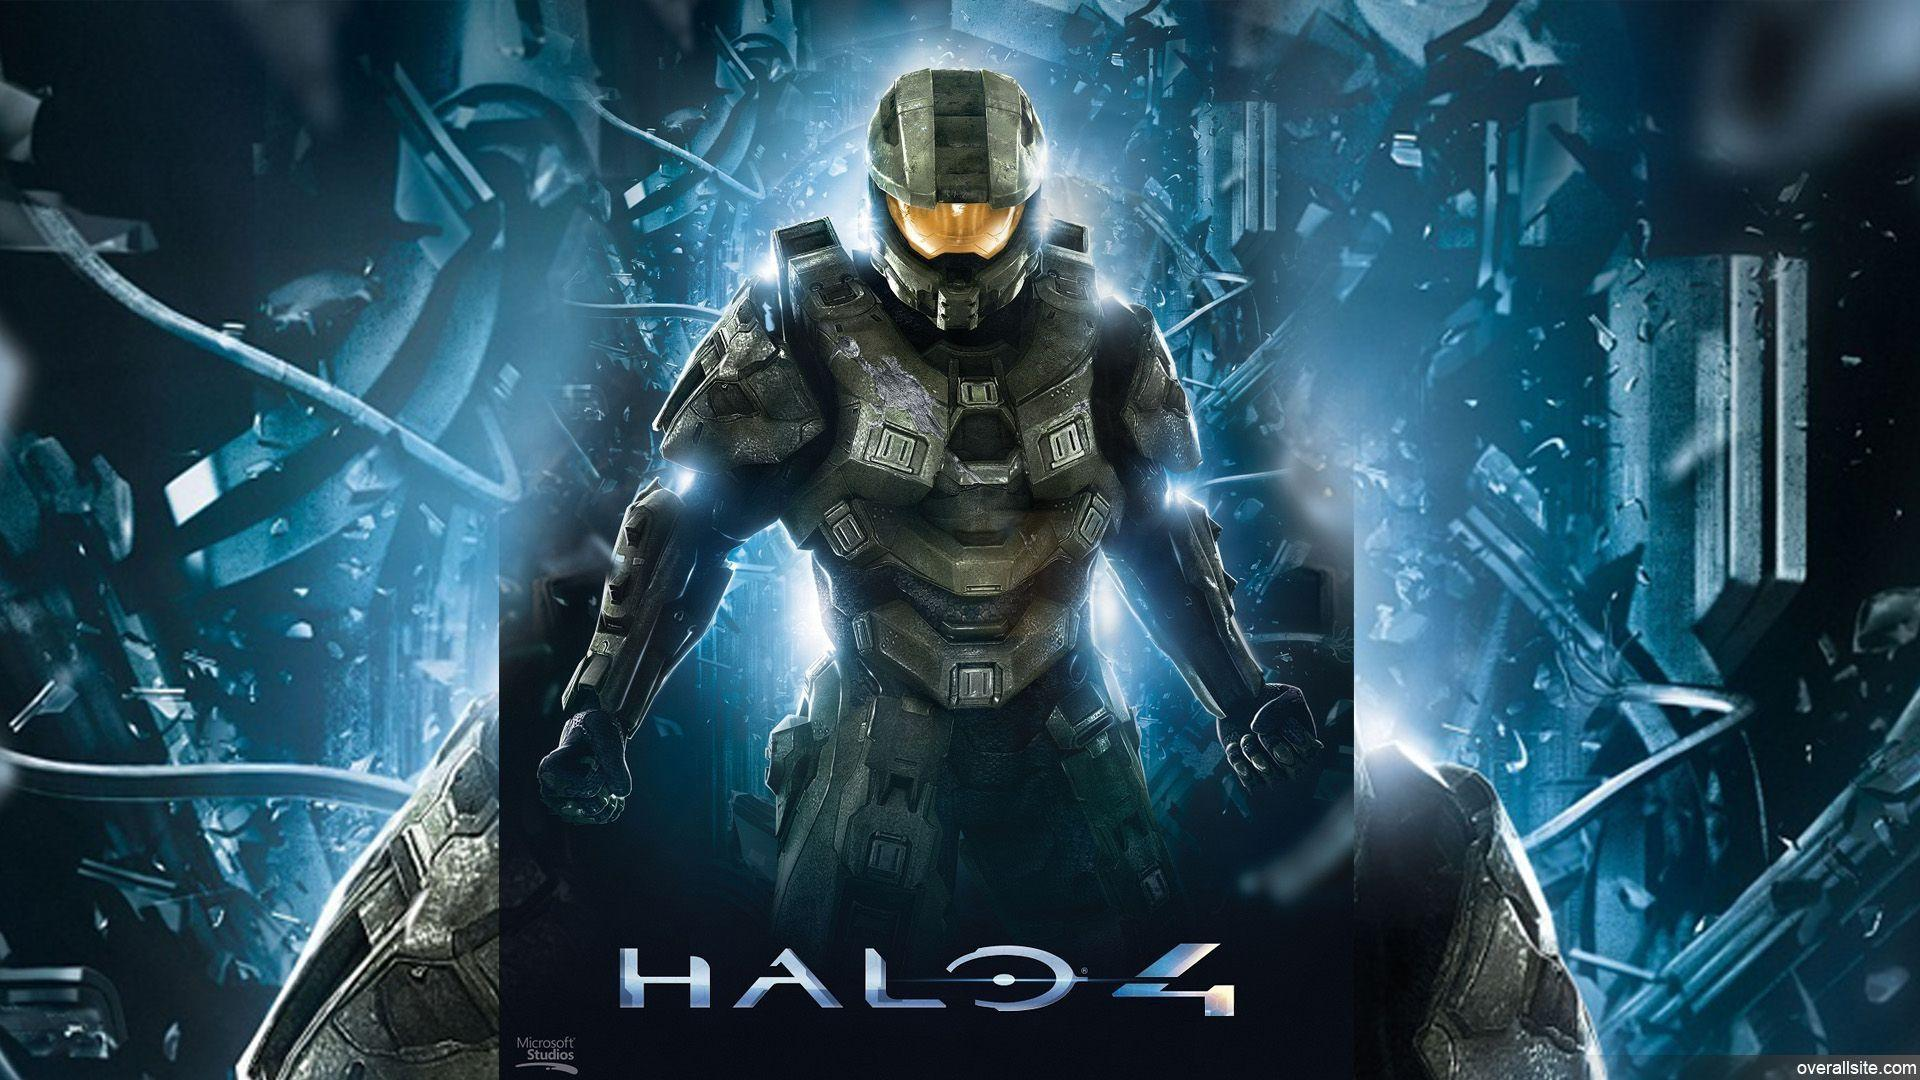 Halo 4 Video Games Wallpapers HD wallpapers